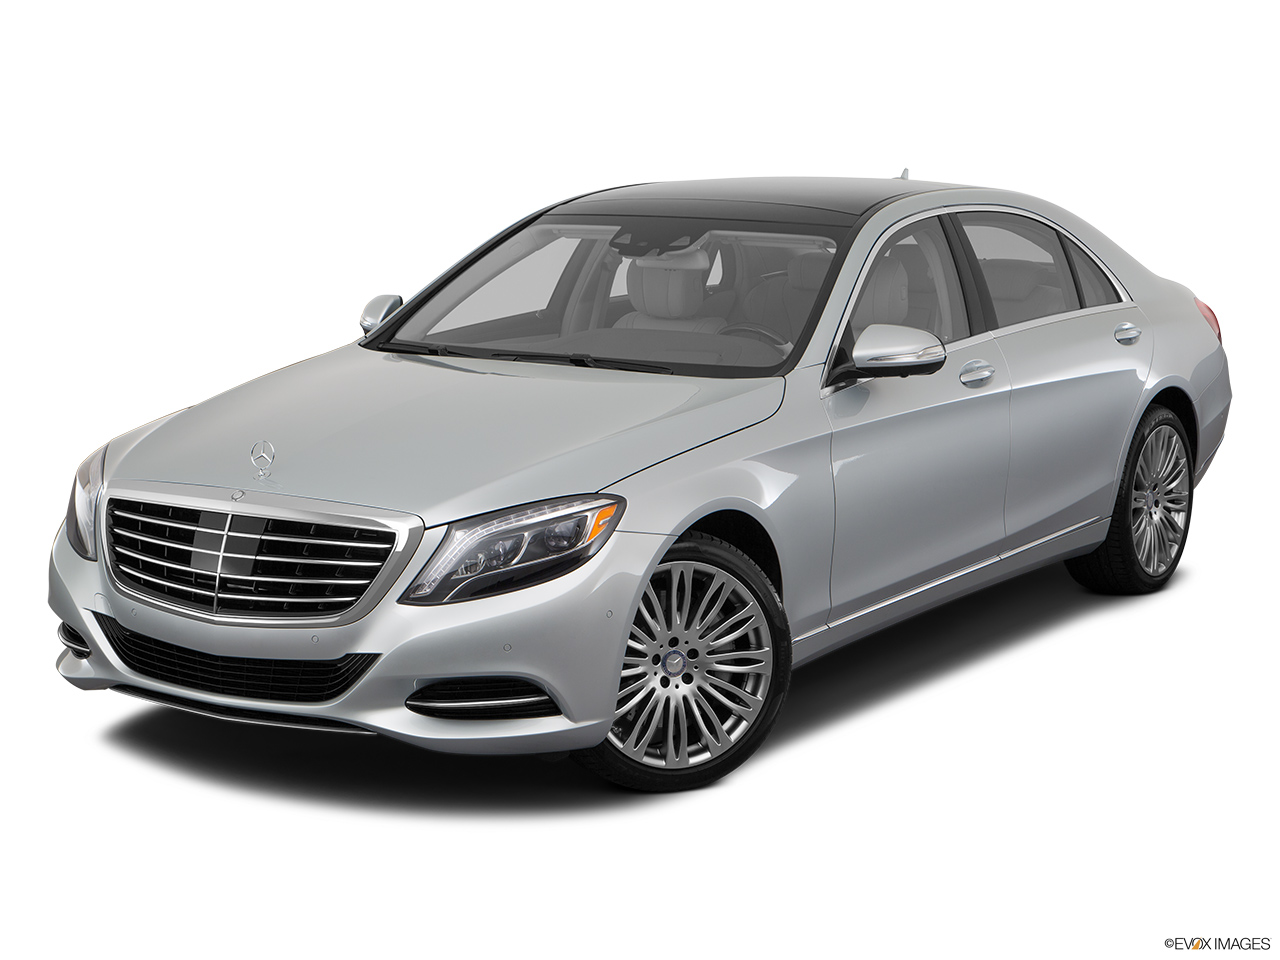 2017 mercedes benz s class prices in oman gulf specs for 2017 s550 mercedes benz price